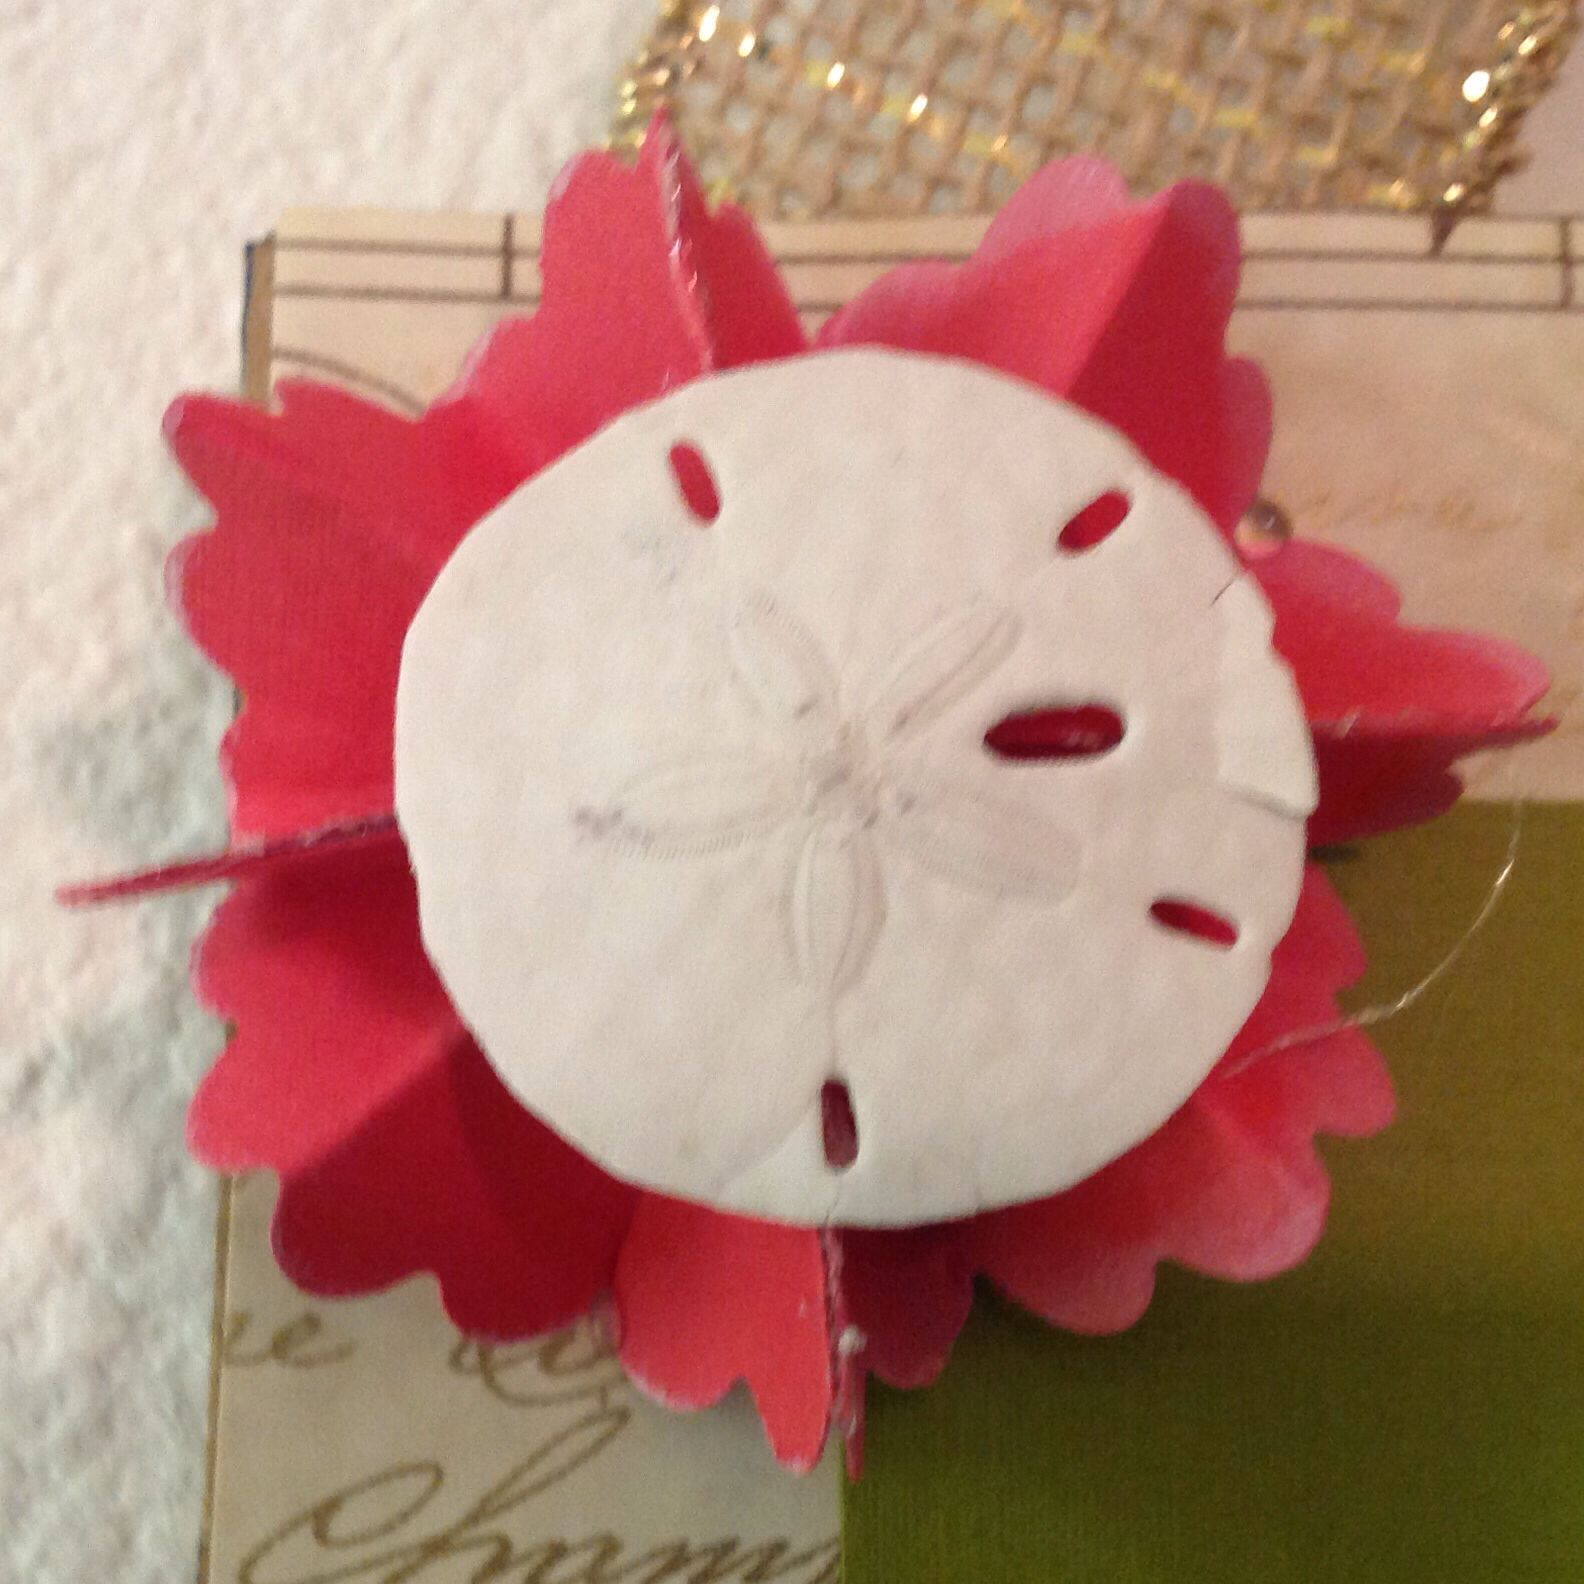 Homemade Paper Flower With Shell Center By Coletta Musick Art